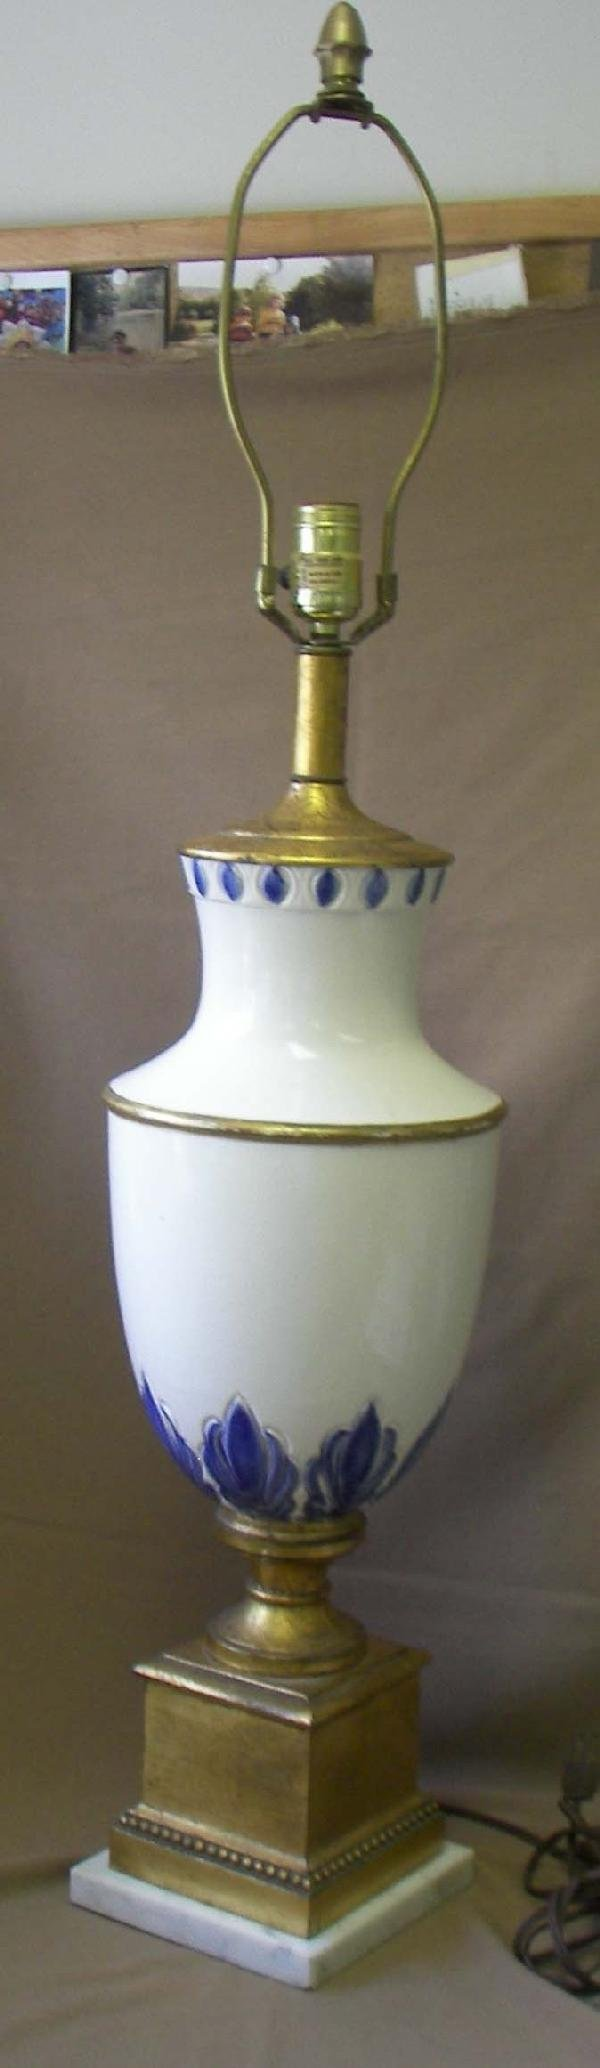 42: 20th C. paint decorated urn shape table lamp